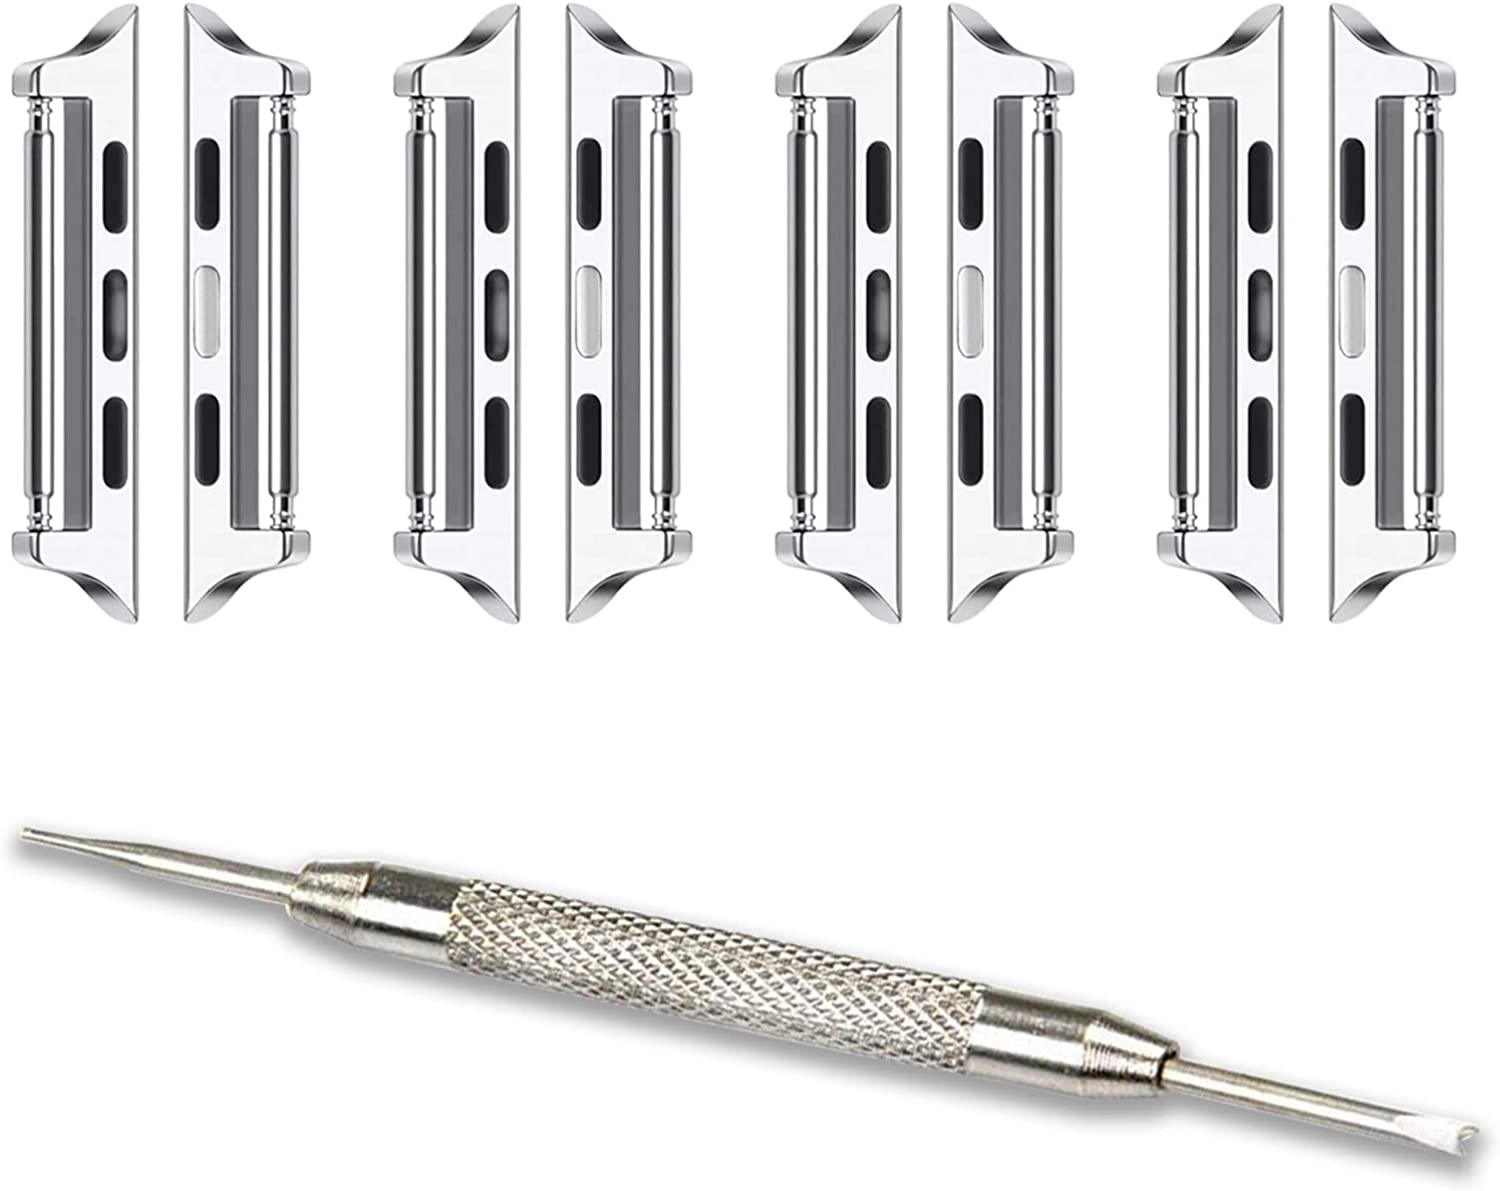 [Spring Bar] OMECKY Connectors Compatible with Apple Watch Band Adapter, Silver (4 Pack)